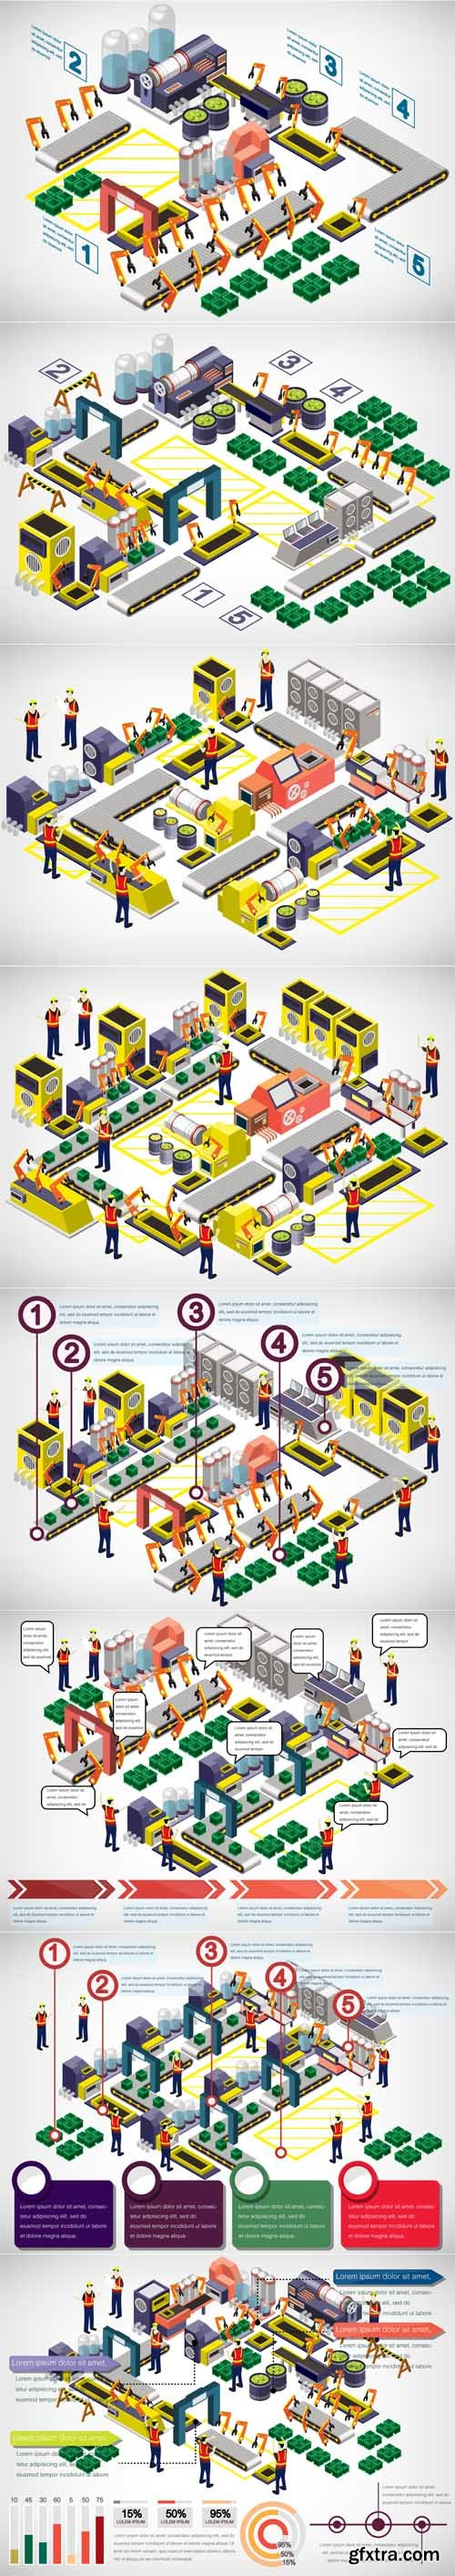 Illlustration of info graphic factory equipment concept - Vectors A000015